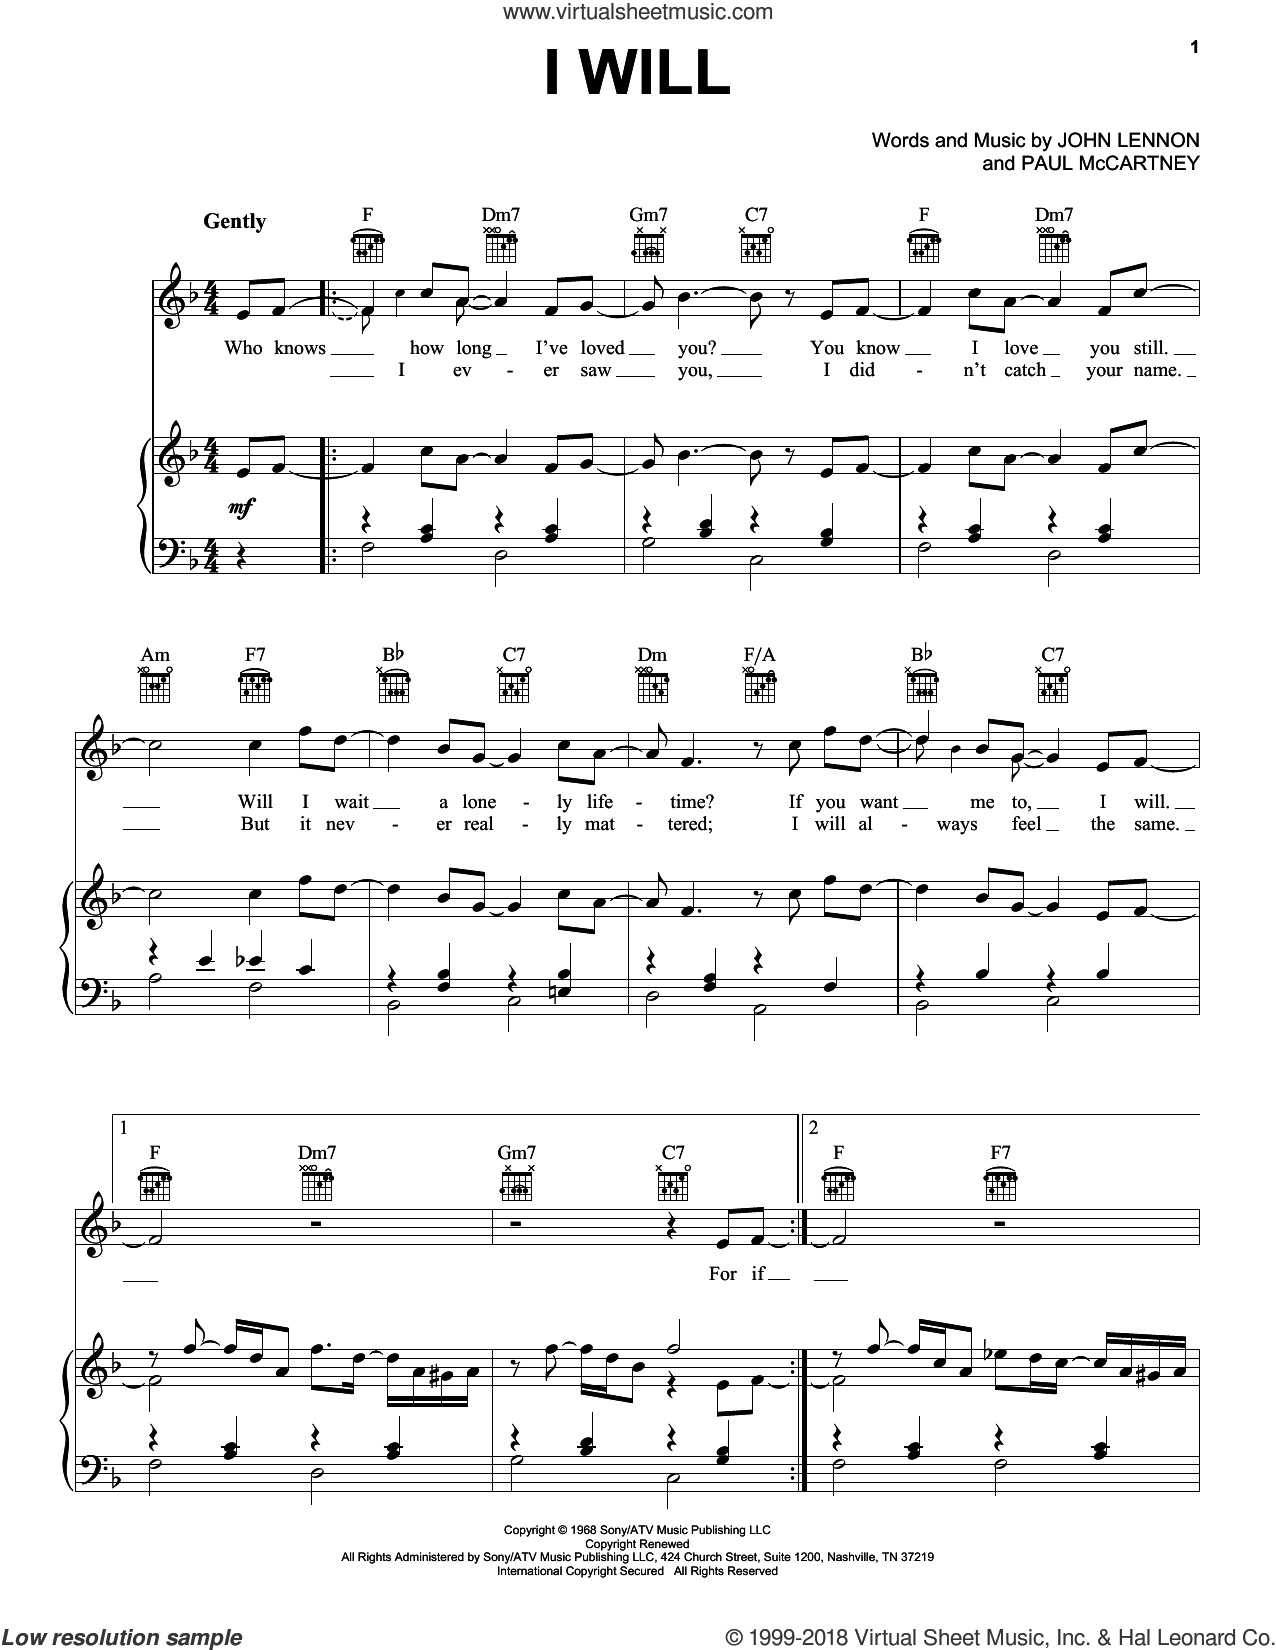 I Will sheet music for voice, piano or guitar by The Beatles, John Lennon and Paul McCartney. Score Image Preview.